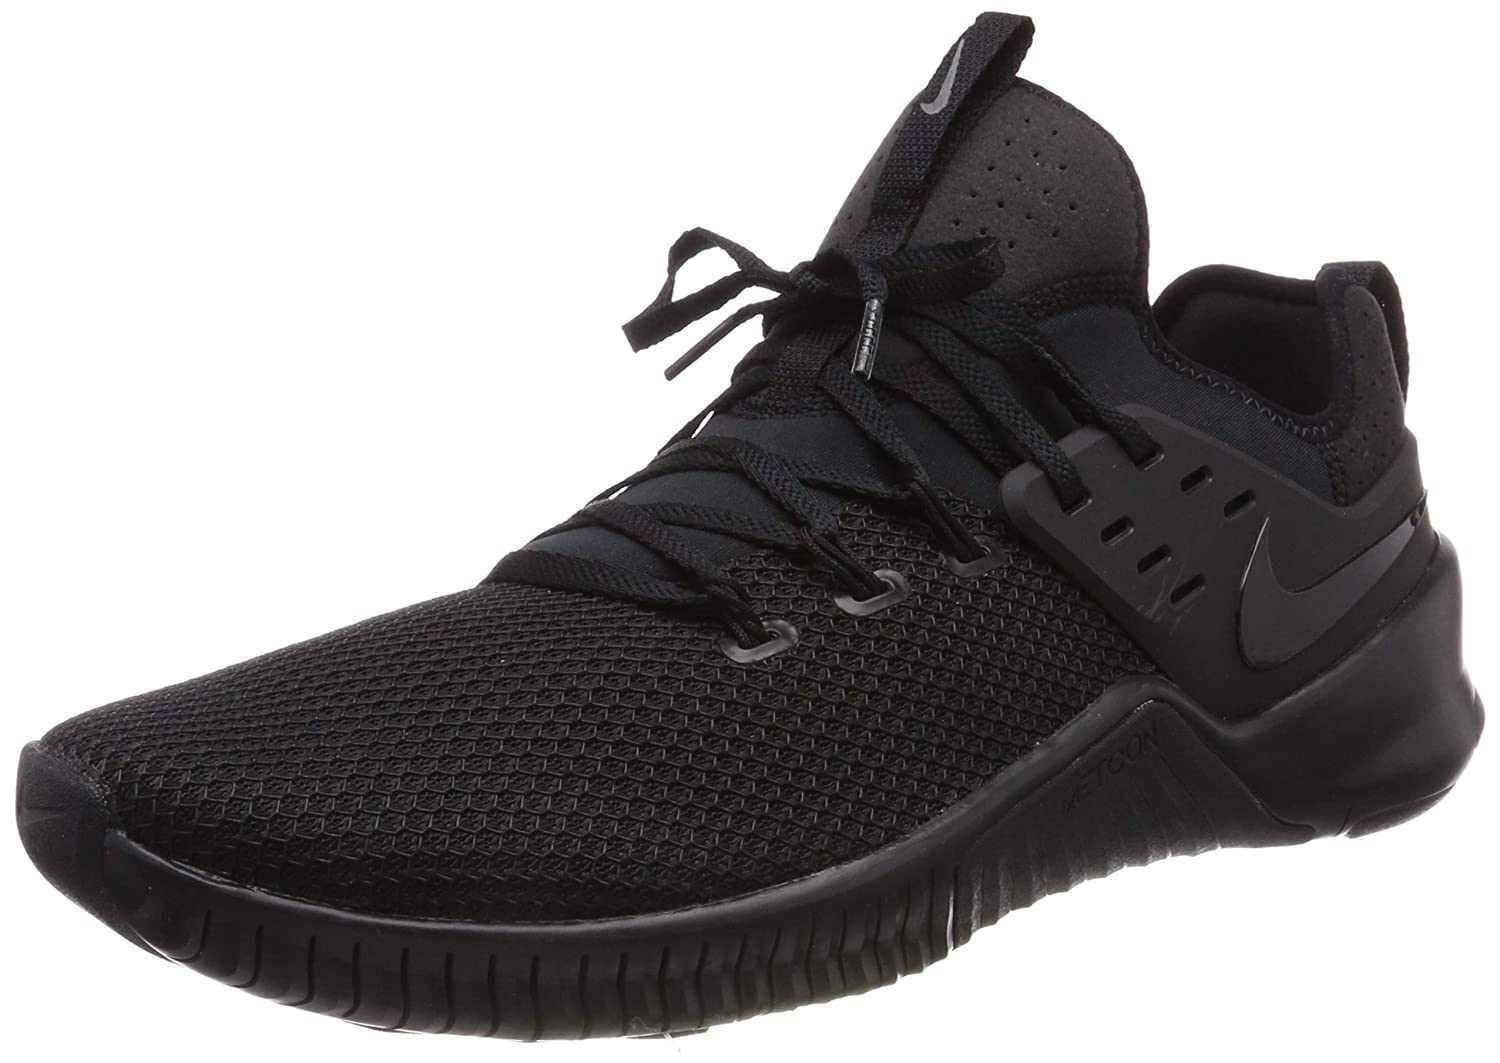 Nike Mens Free Metcon Training Shoes 10.5 D M US Black Black Black